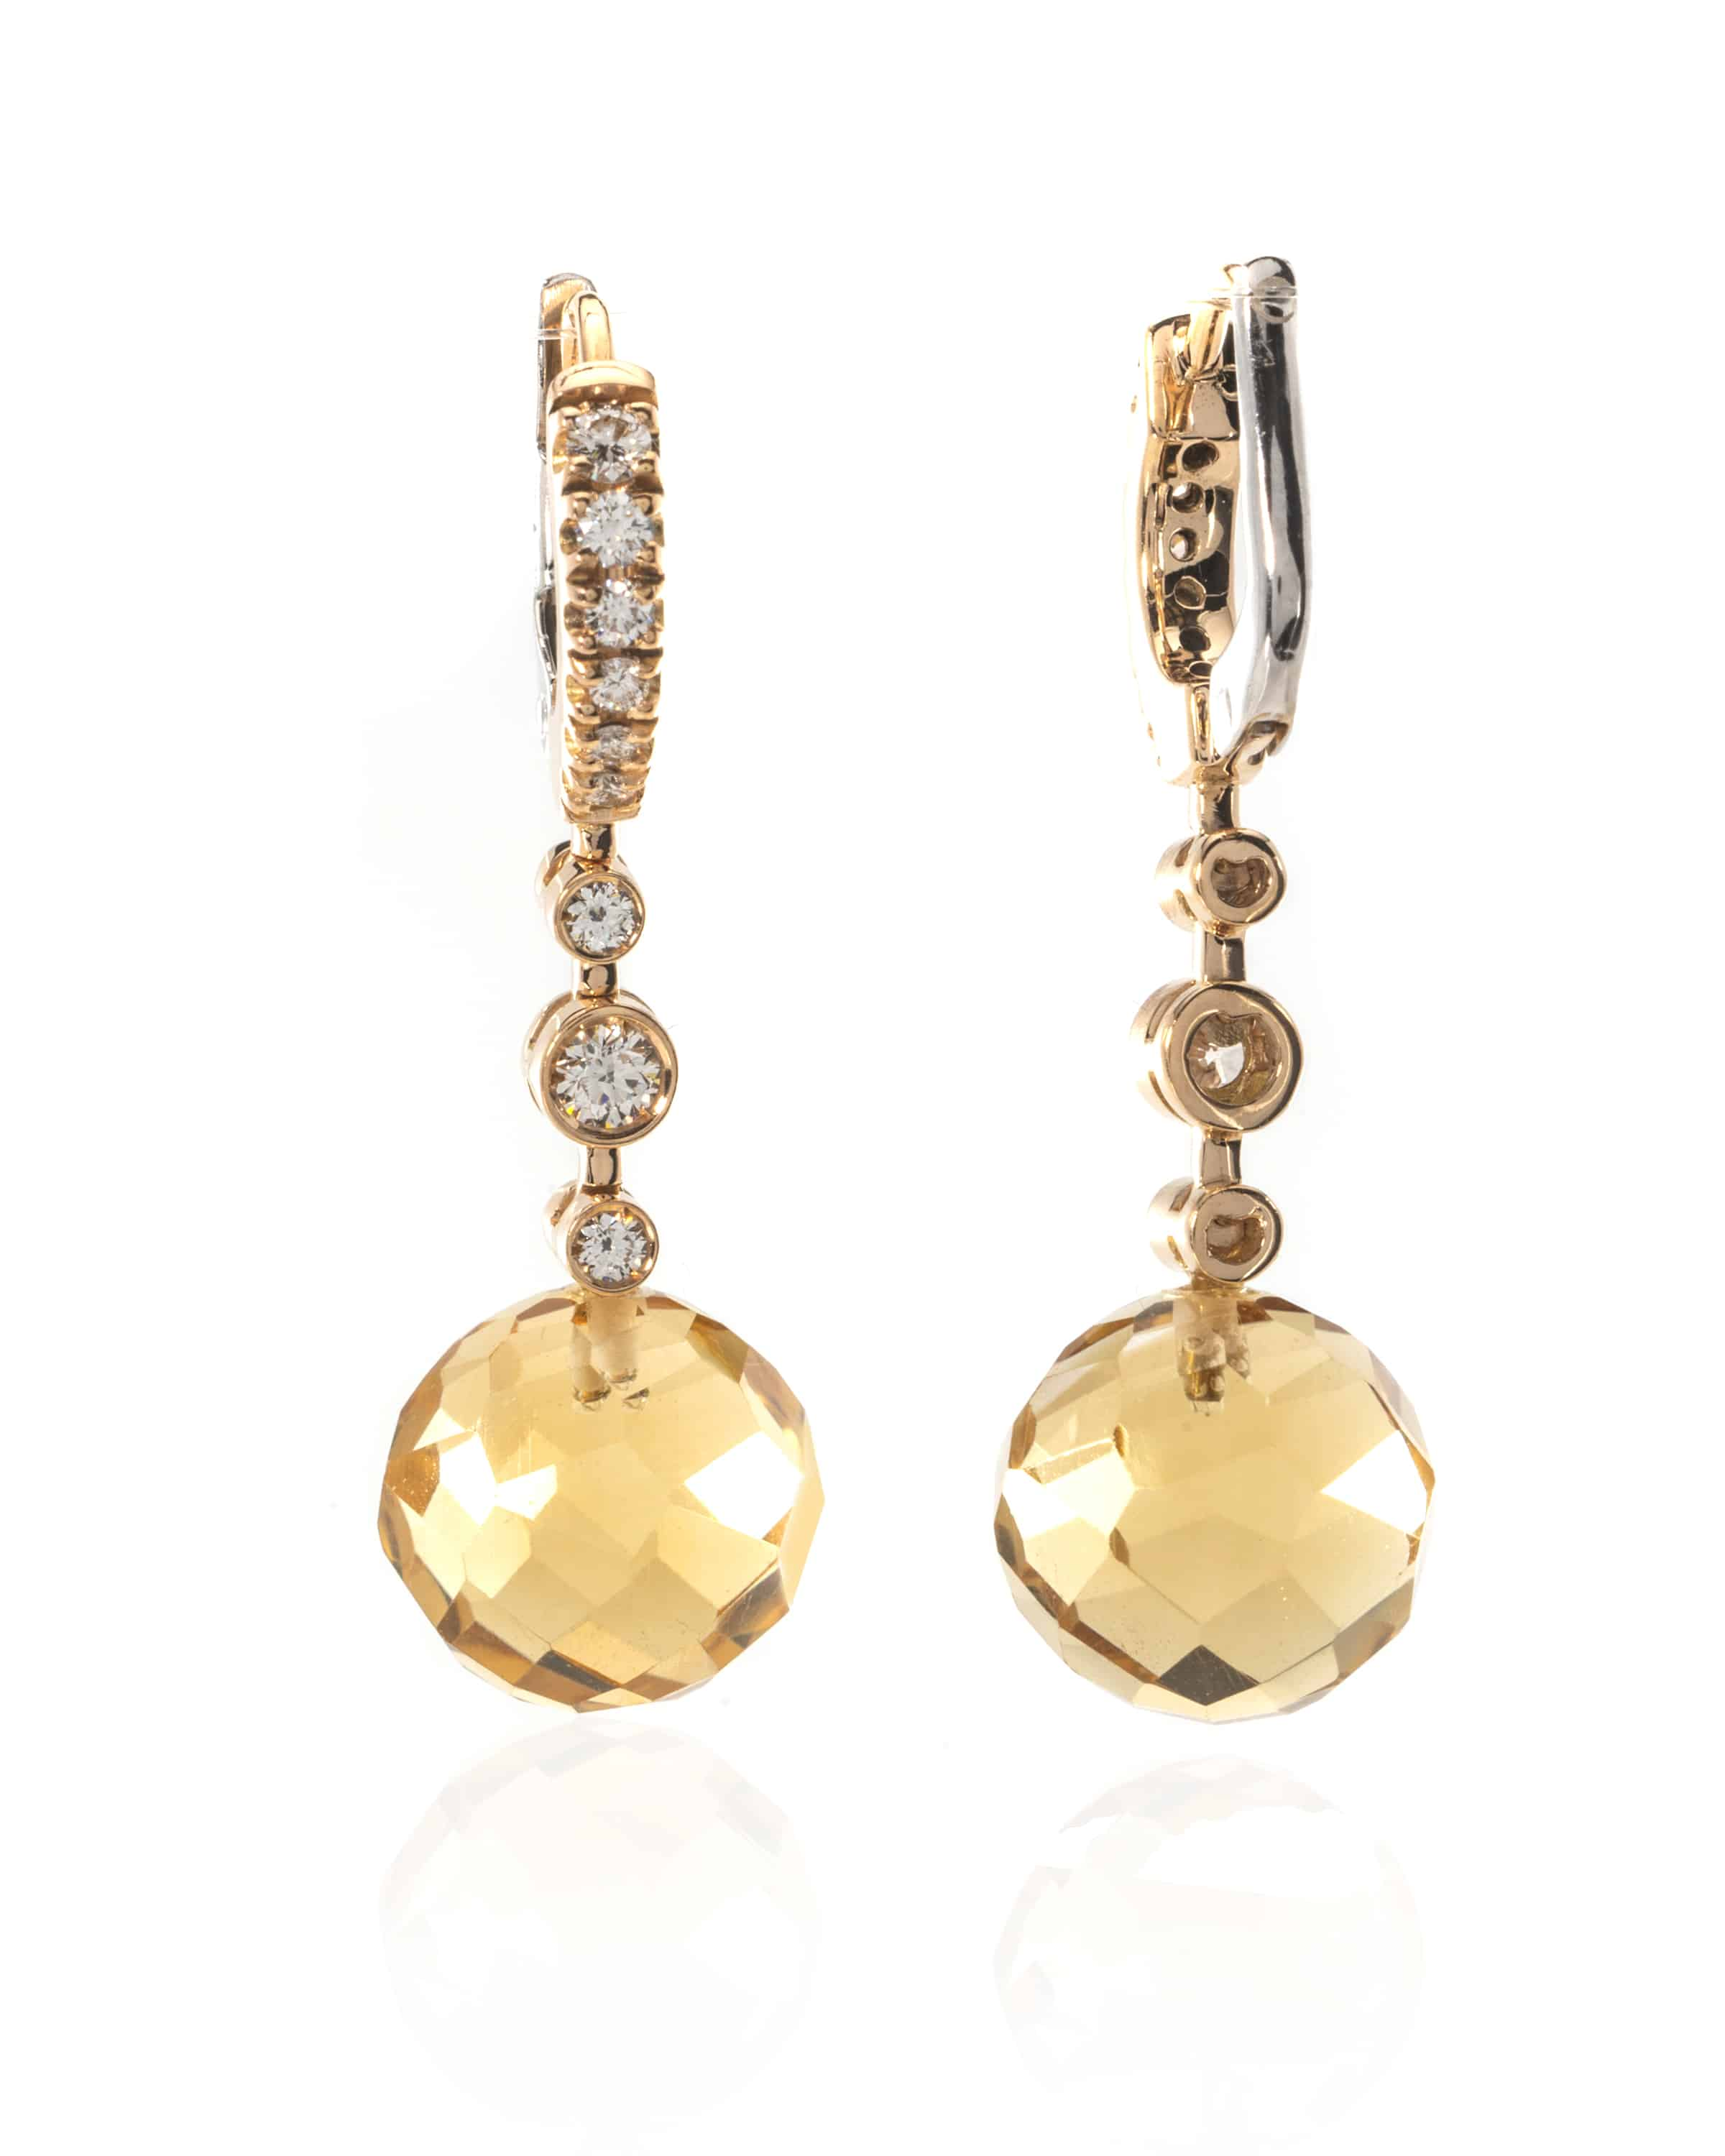 Crivelli 18k White & Rose Gold Diamond And Citrine Dangle Earrings 117-OR432 - 93337243